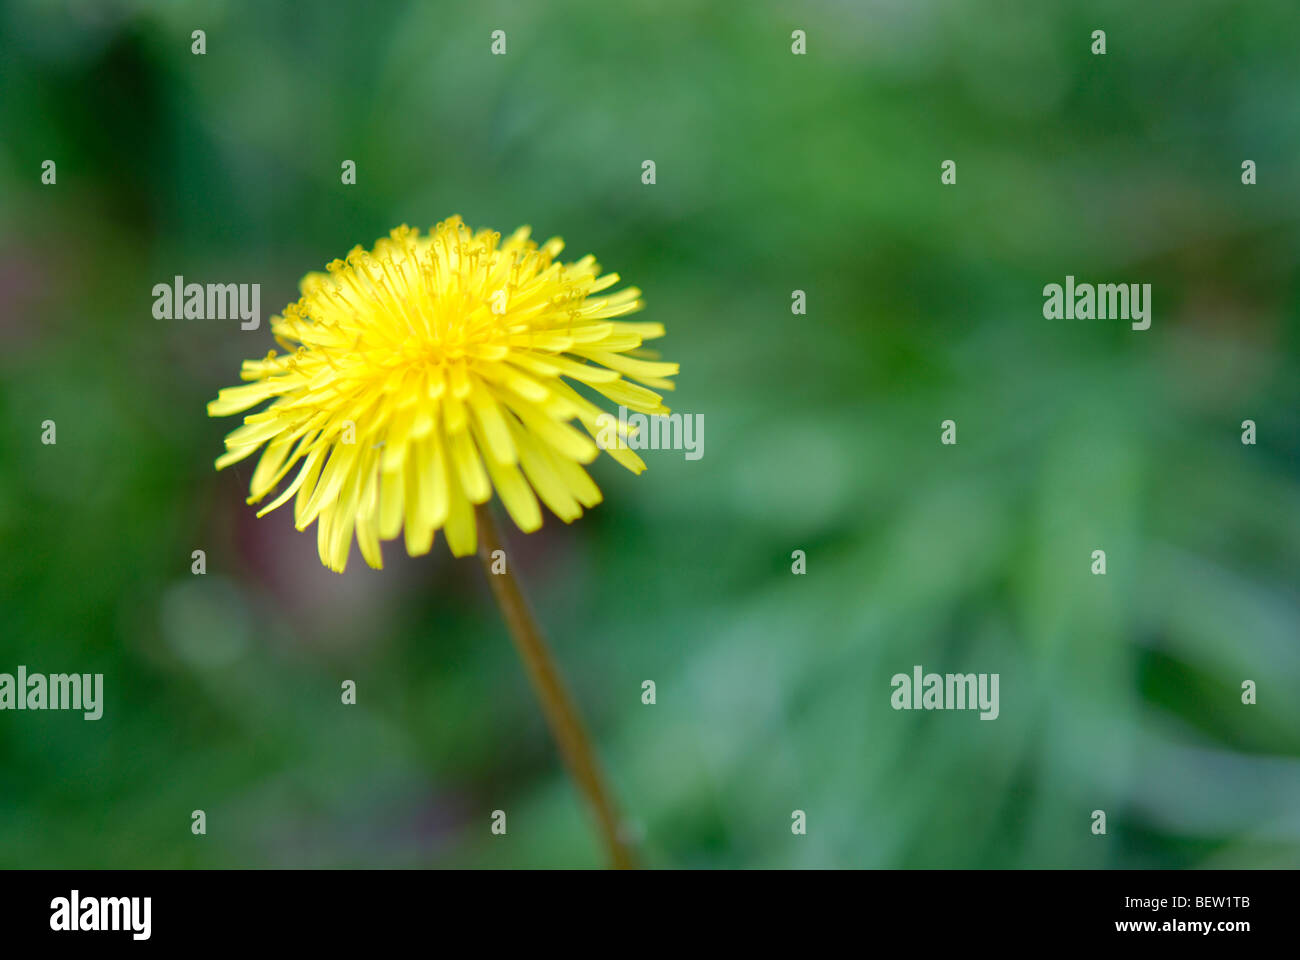 A single dandelion flower. - Stock Image